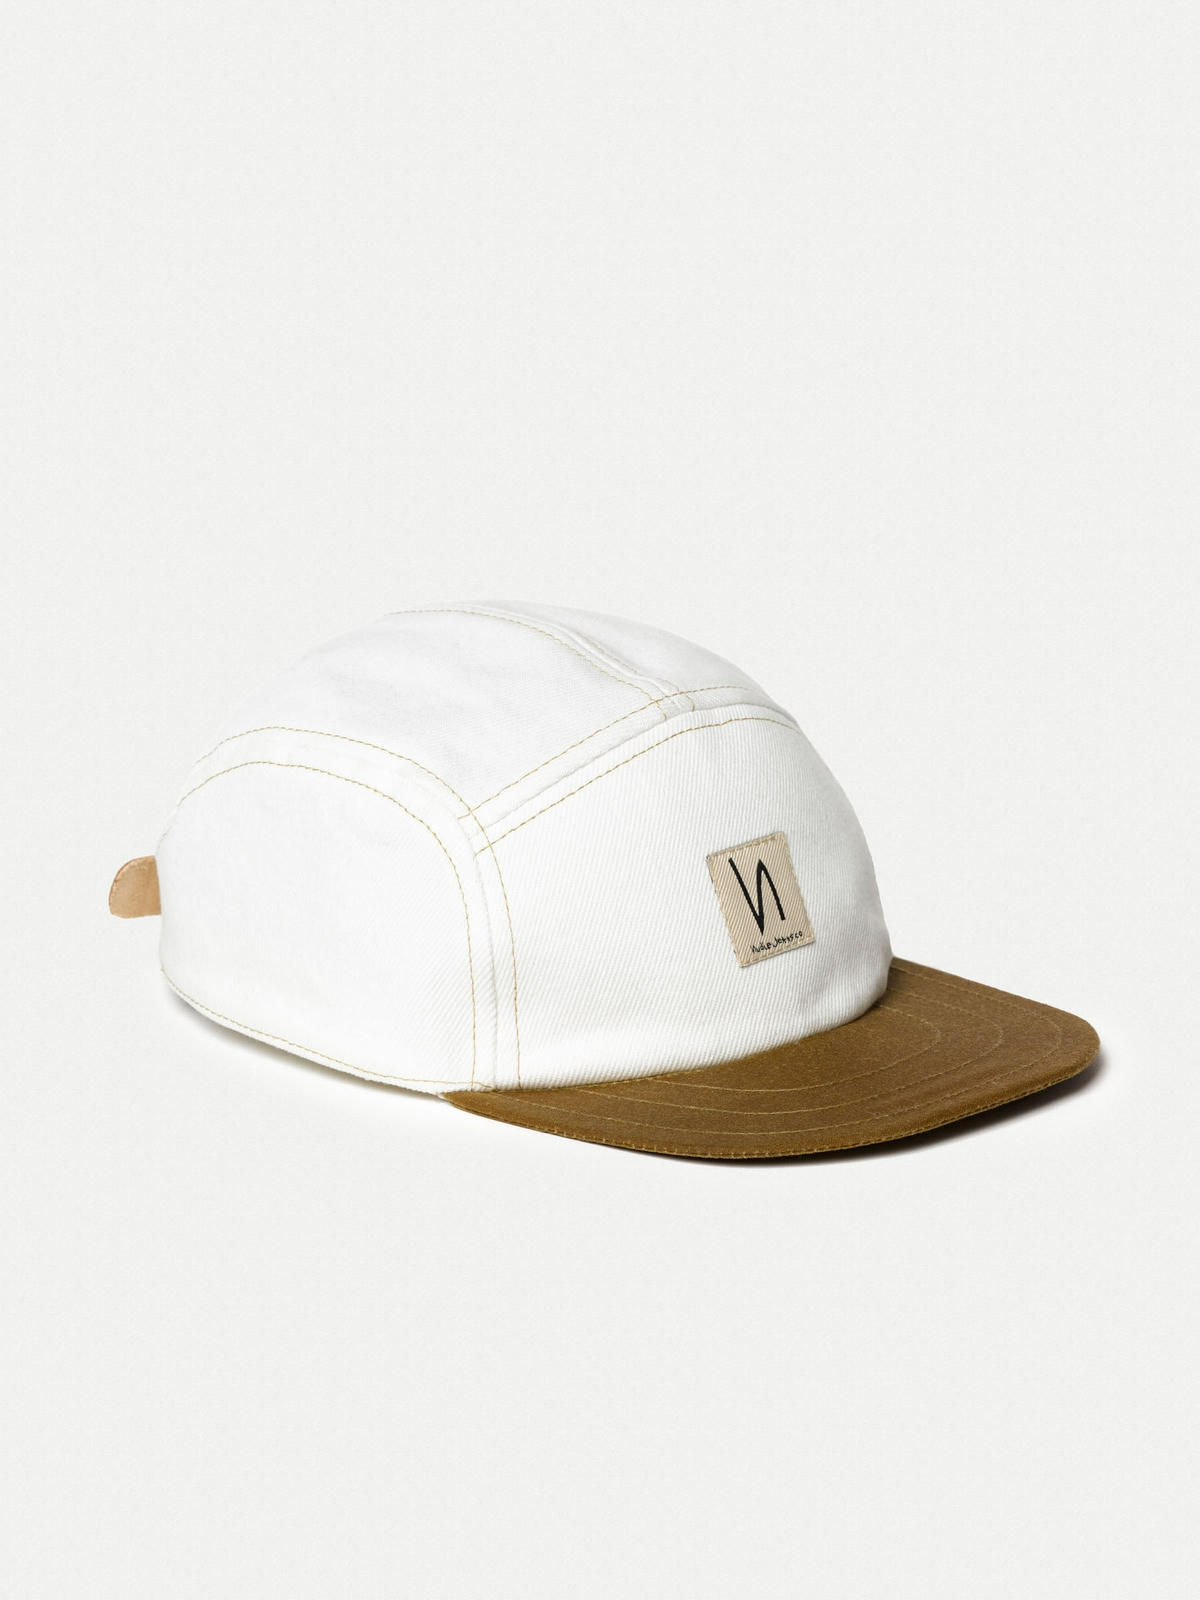 6bca0bd9 Buy Larsson Cap. Please enable JavaScript to buy this product.